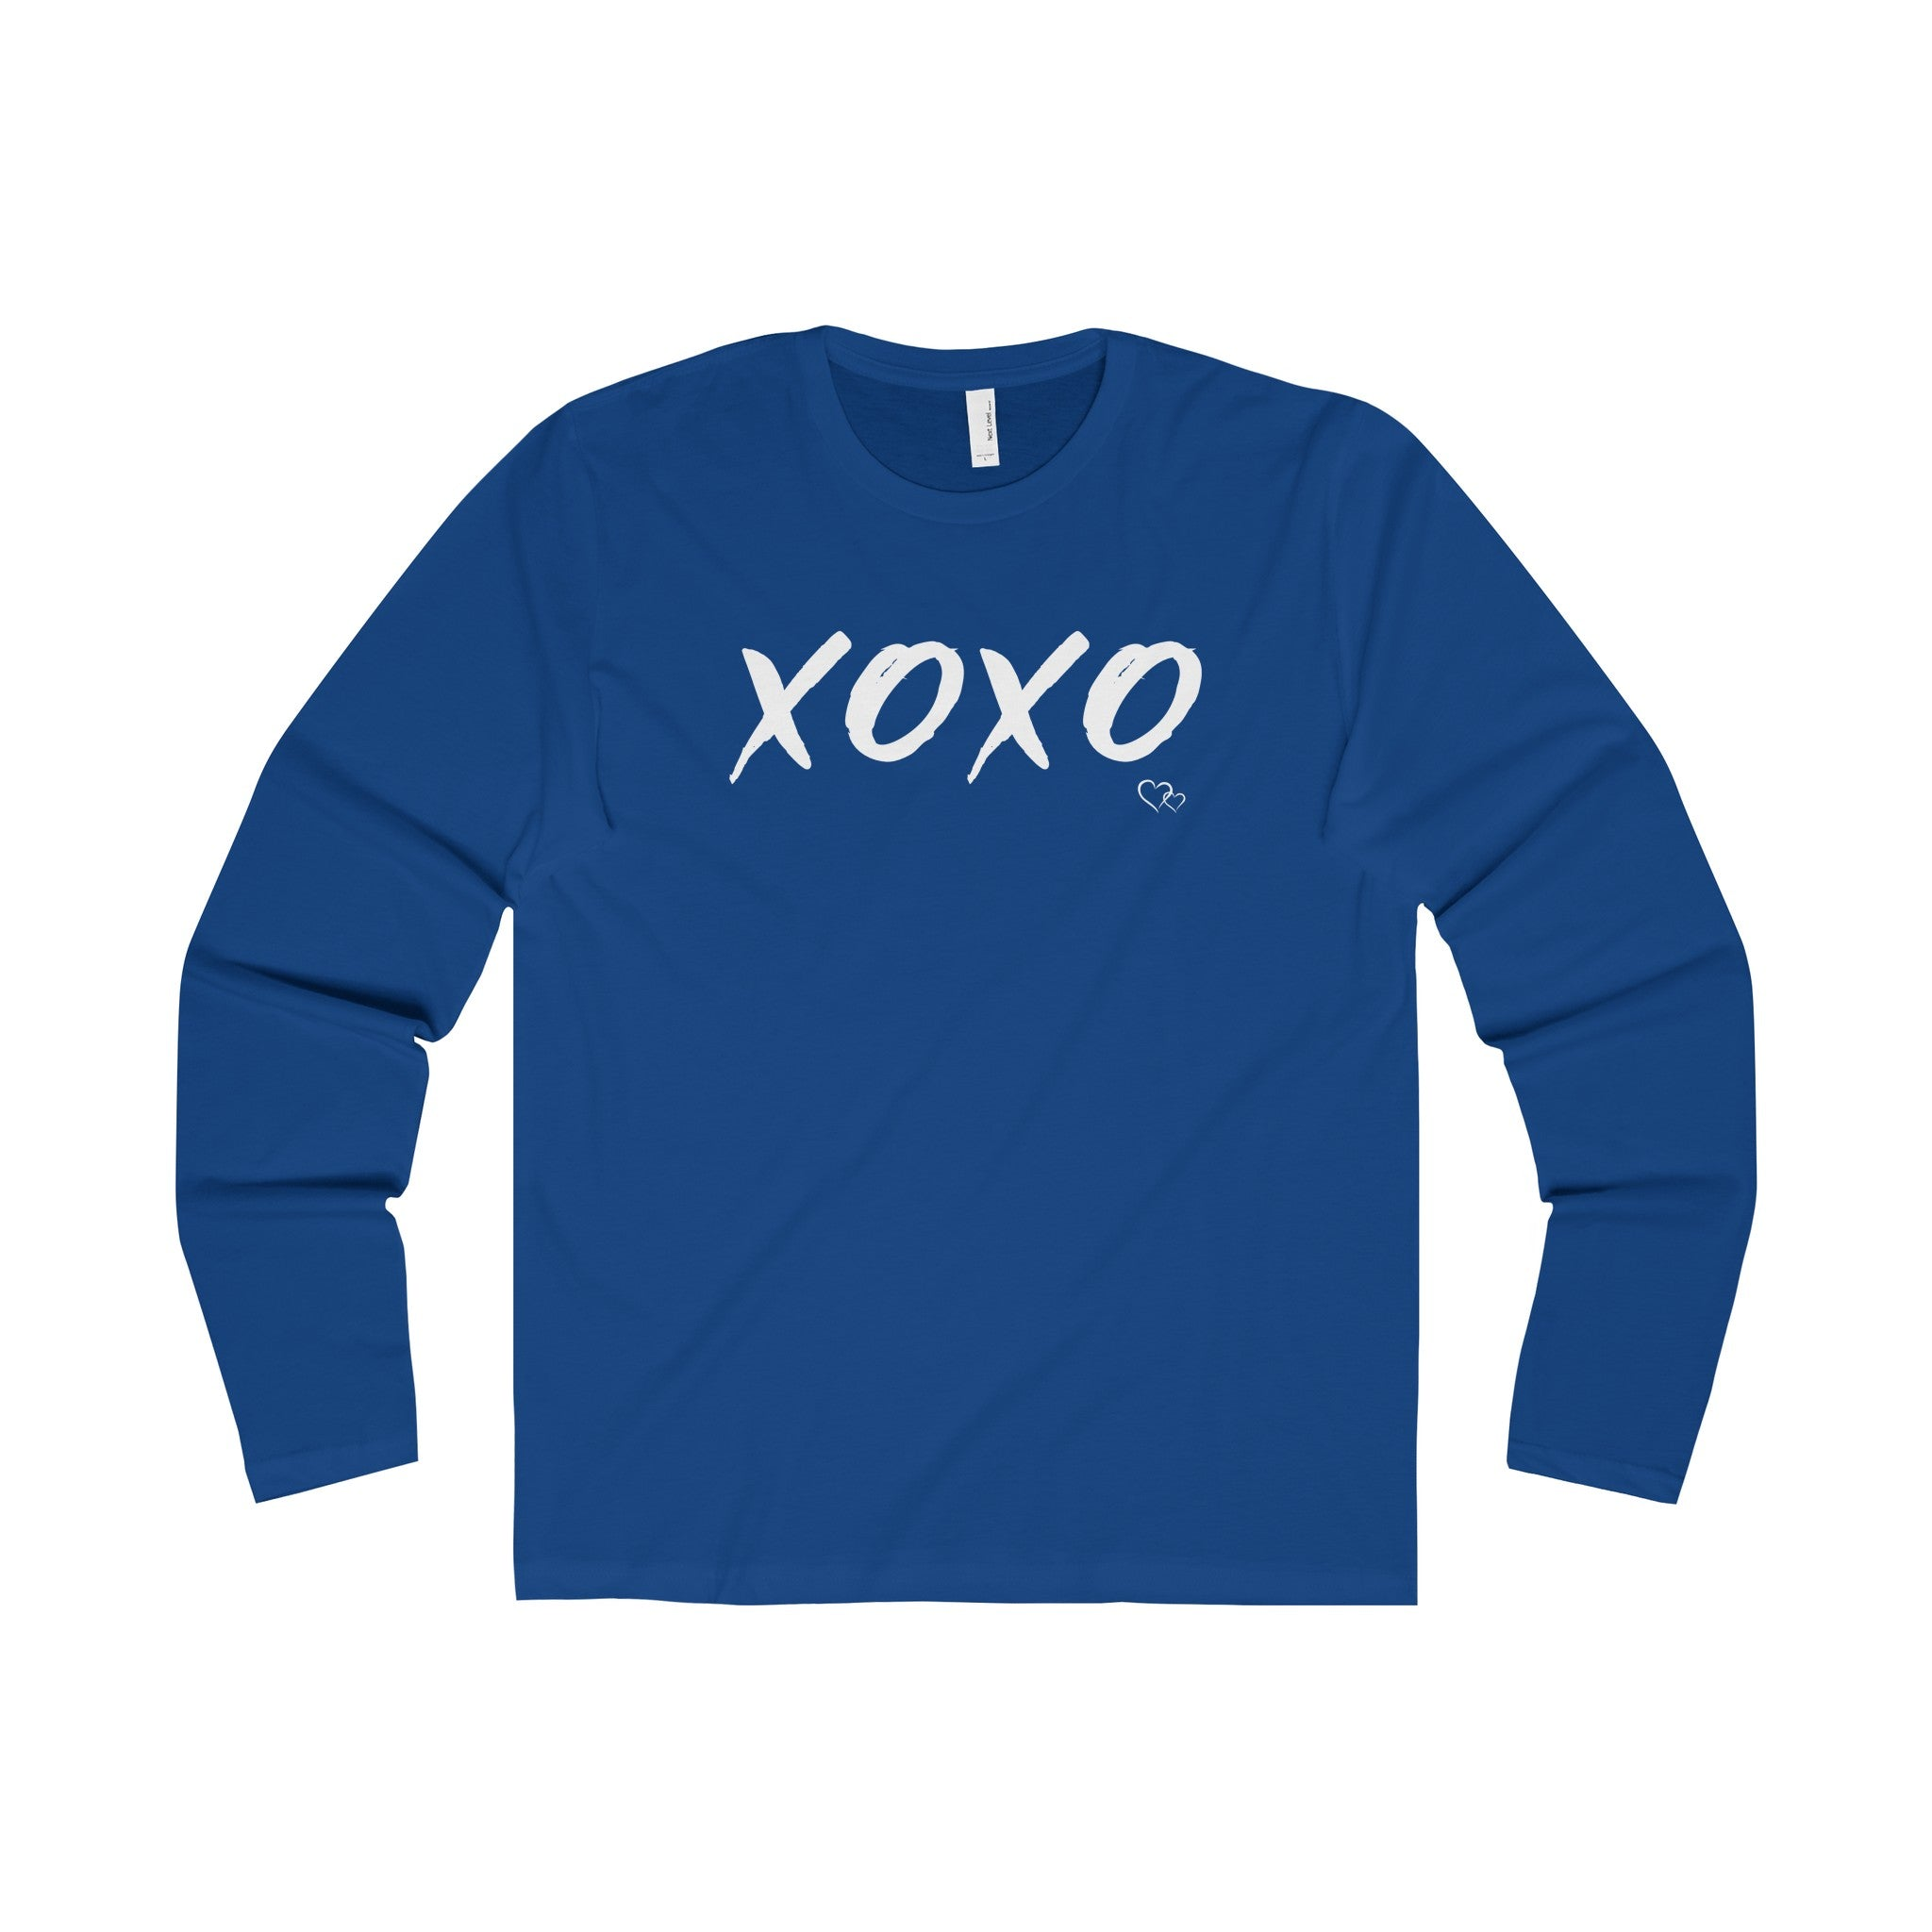 XOXO - Long Sleeve (Unisex)